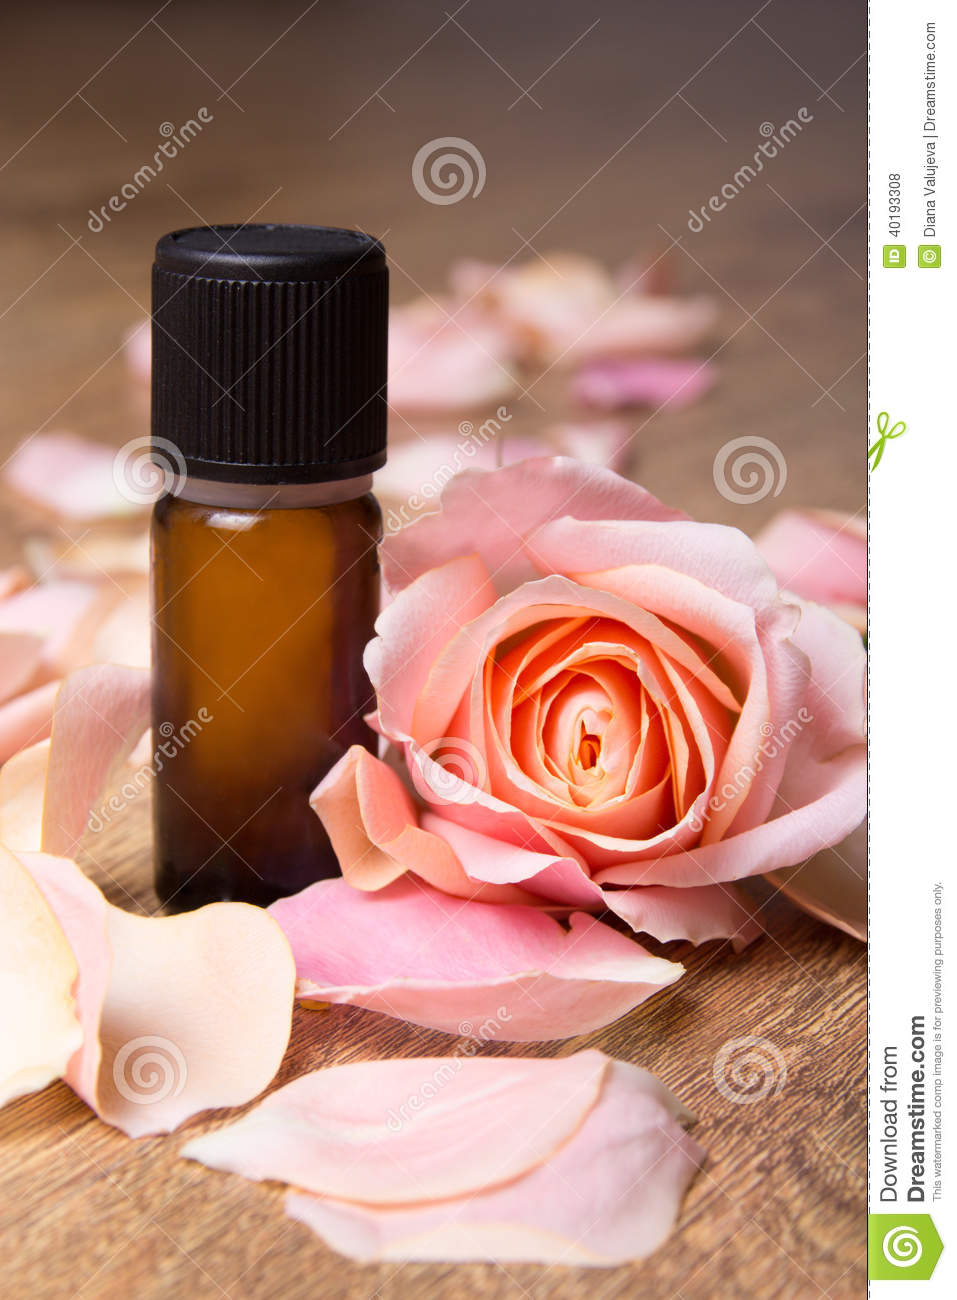 Bottle of essential oil and rose petals stock photo image 40193308 - Rose essential oil business ...